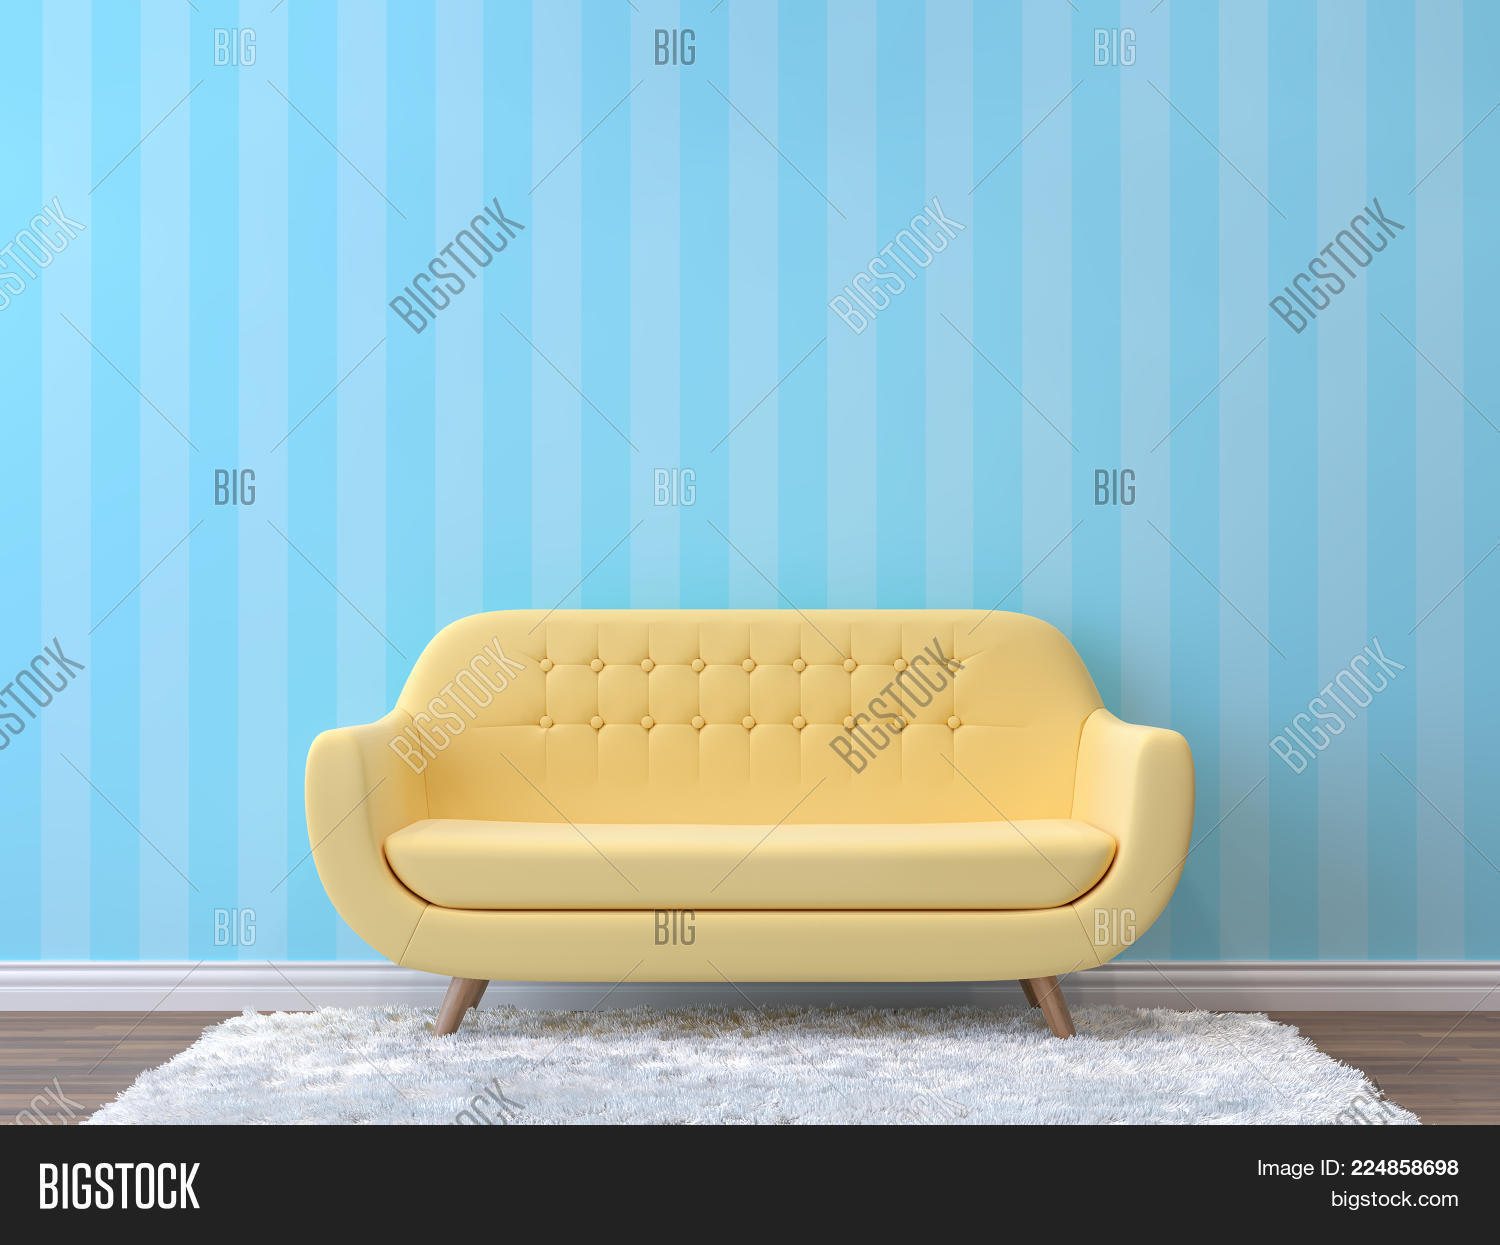 Colorful Living Room Image & Photo (Free Trial) | Bigstock